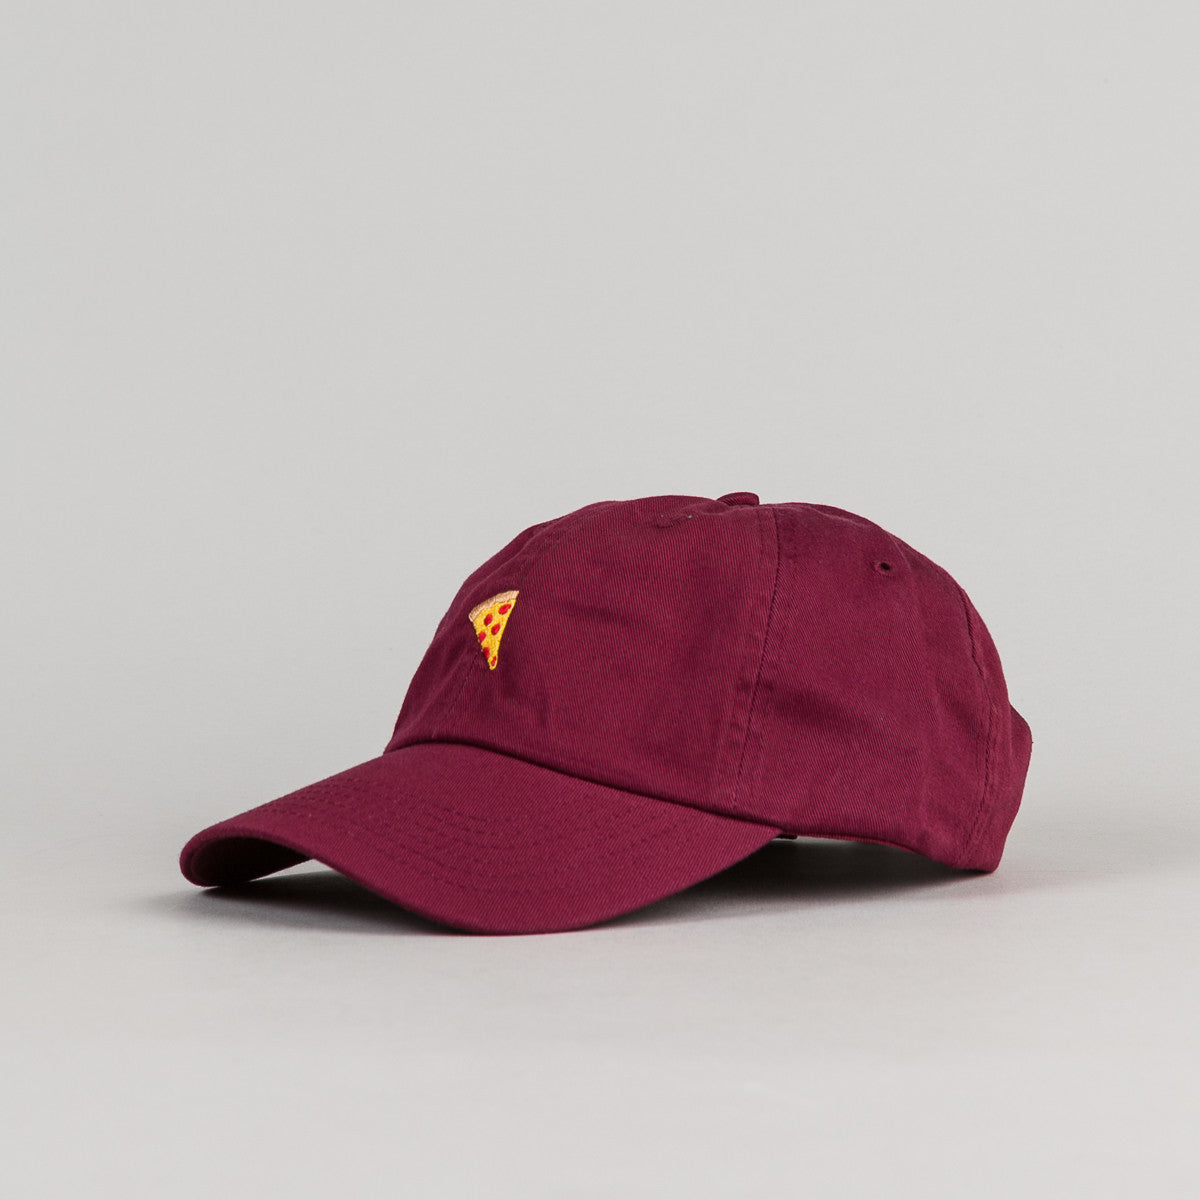 Pizza Skateboards Emoji Delivery Boy Cap - Burgundy